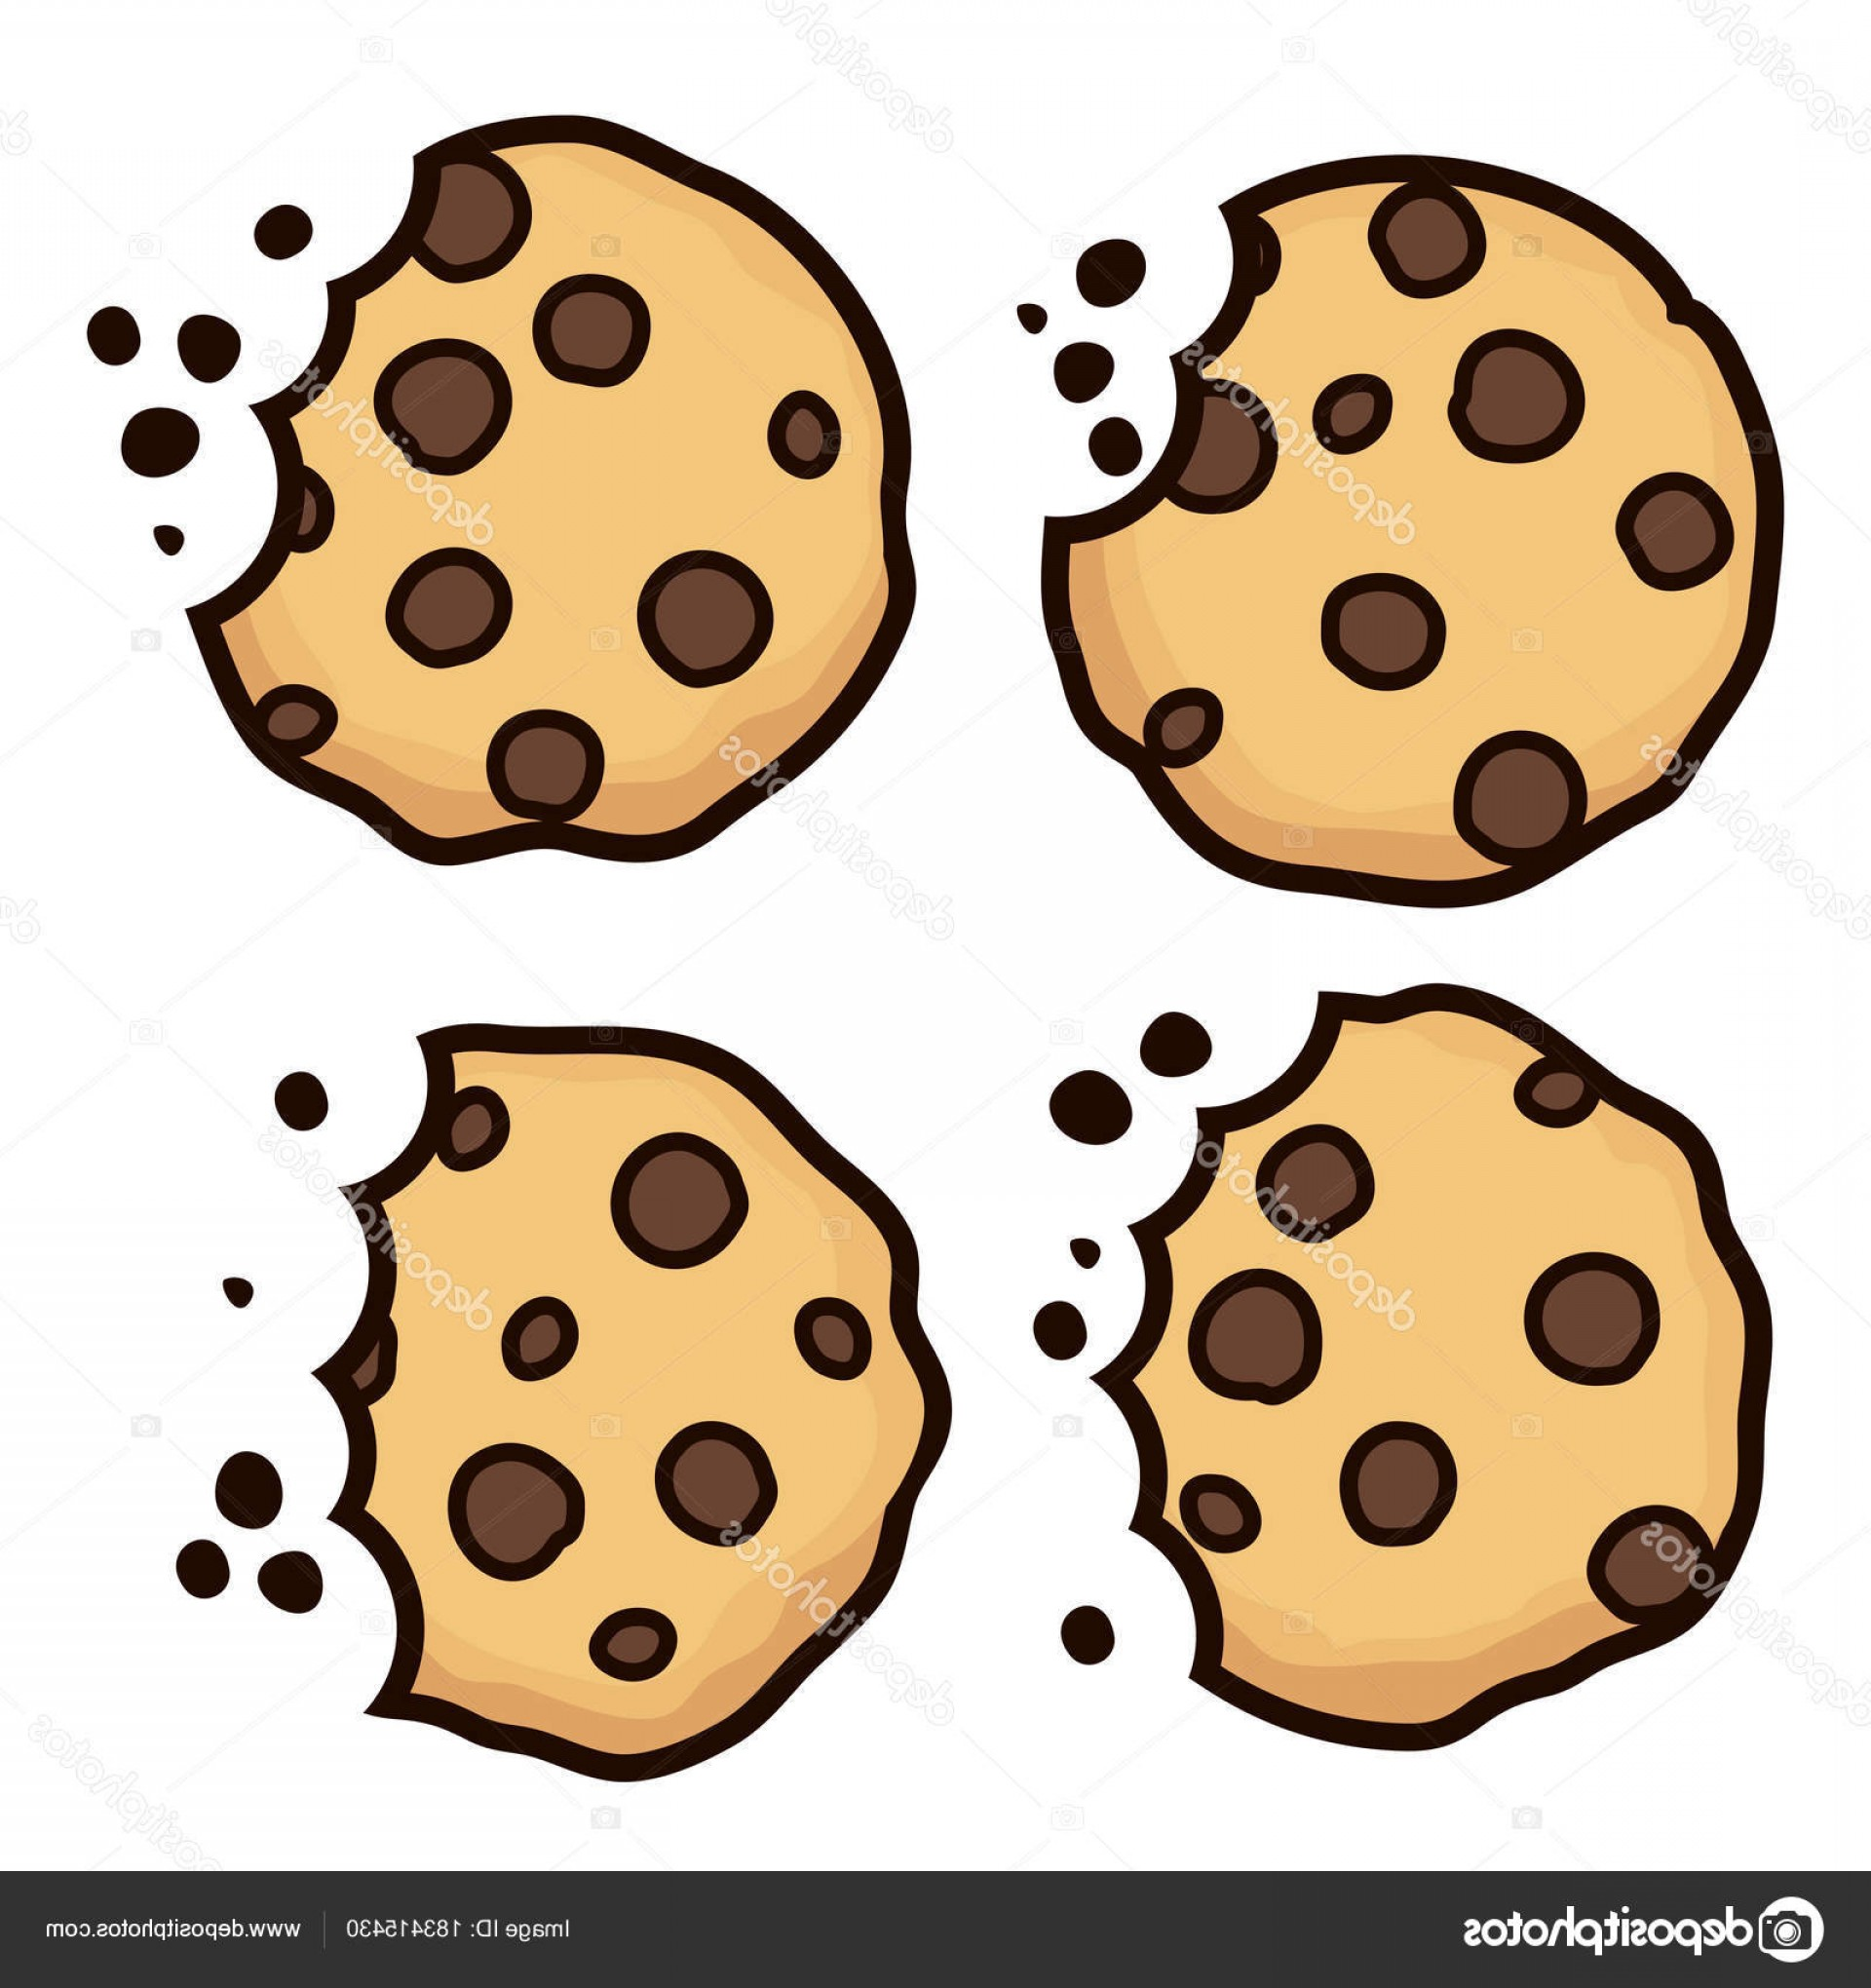 Chocolate Clip Art Vector: Stock Illustration Vector Set Of Chocolate Chip